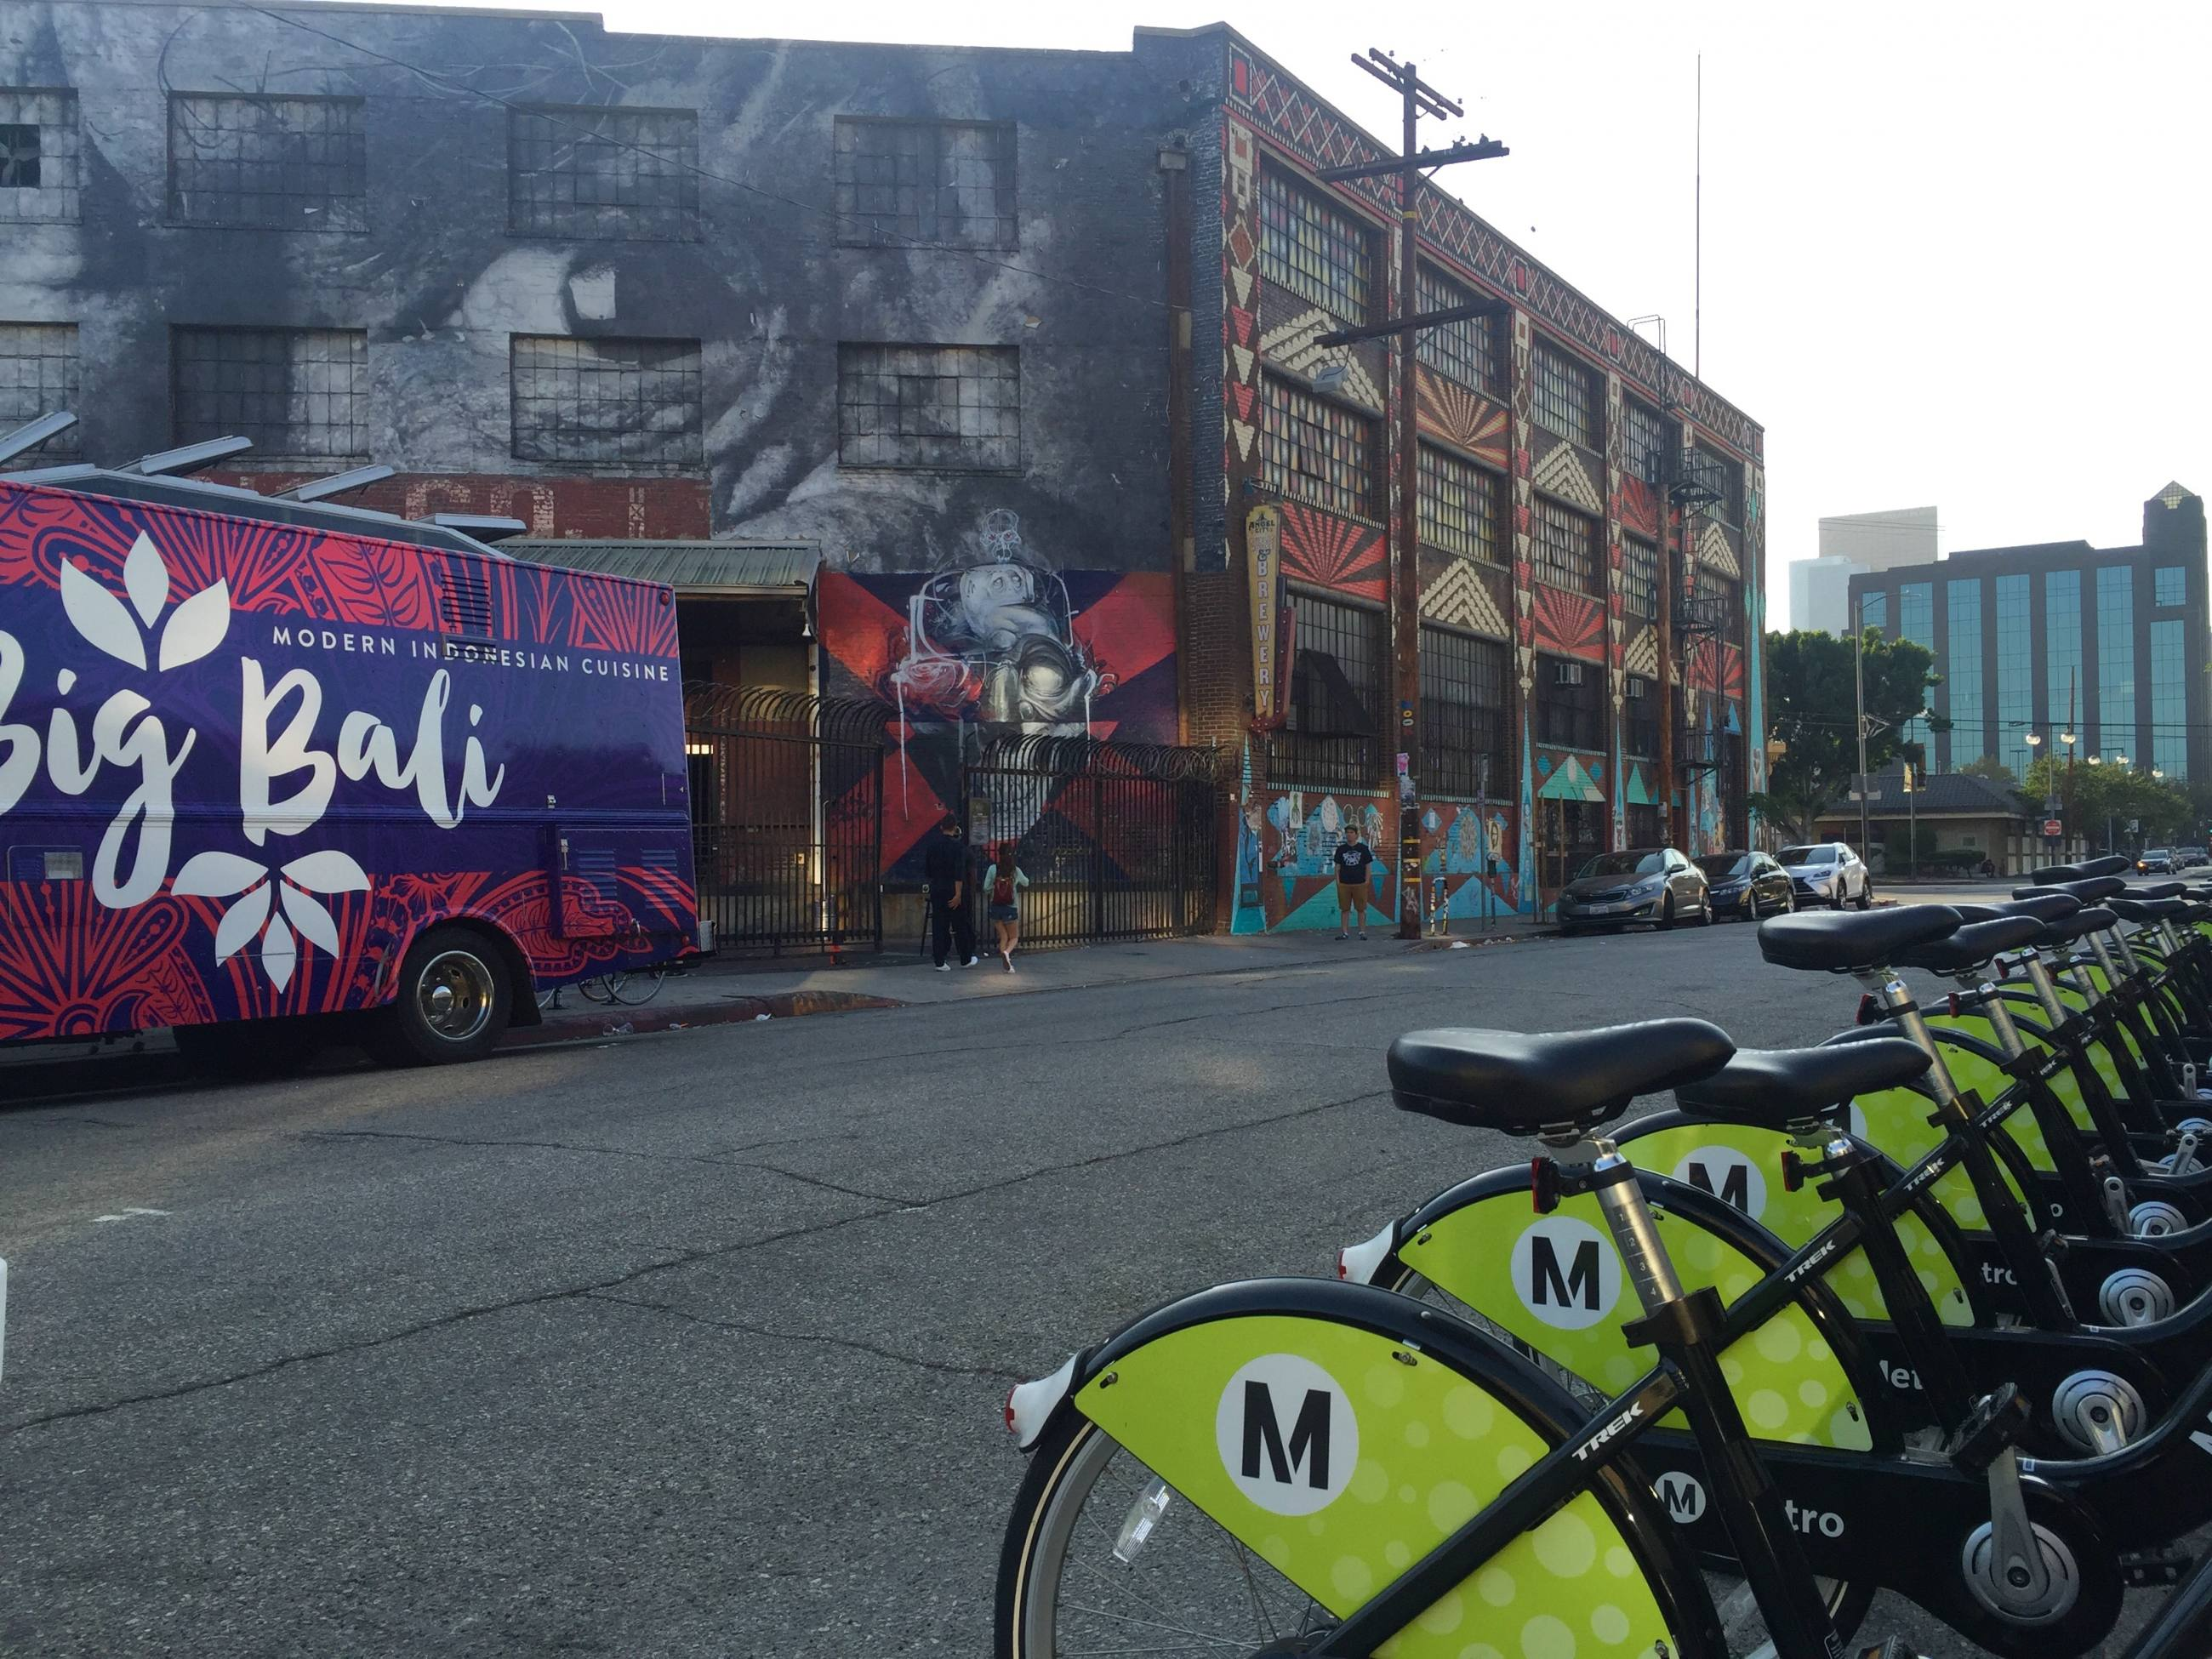 Metro Bike Share Station at Angel City Brewery